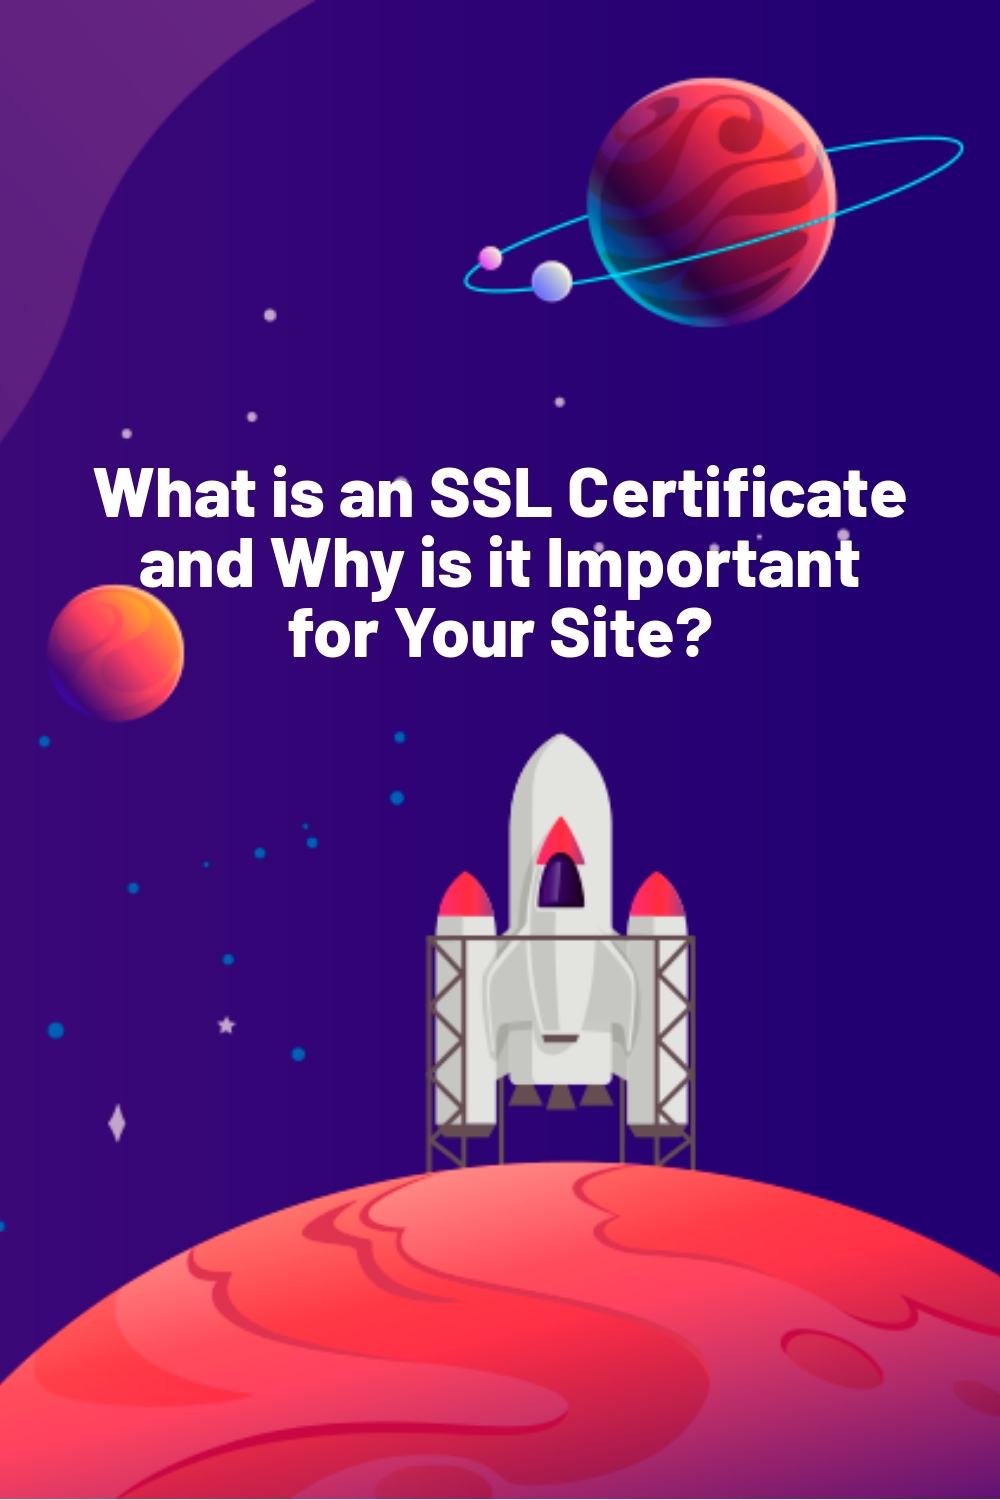 What is an SSL Certificate and Why is it Important for Your Site?